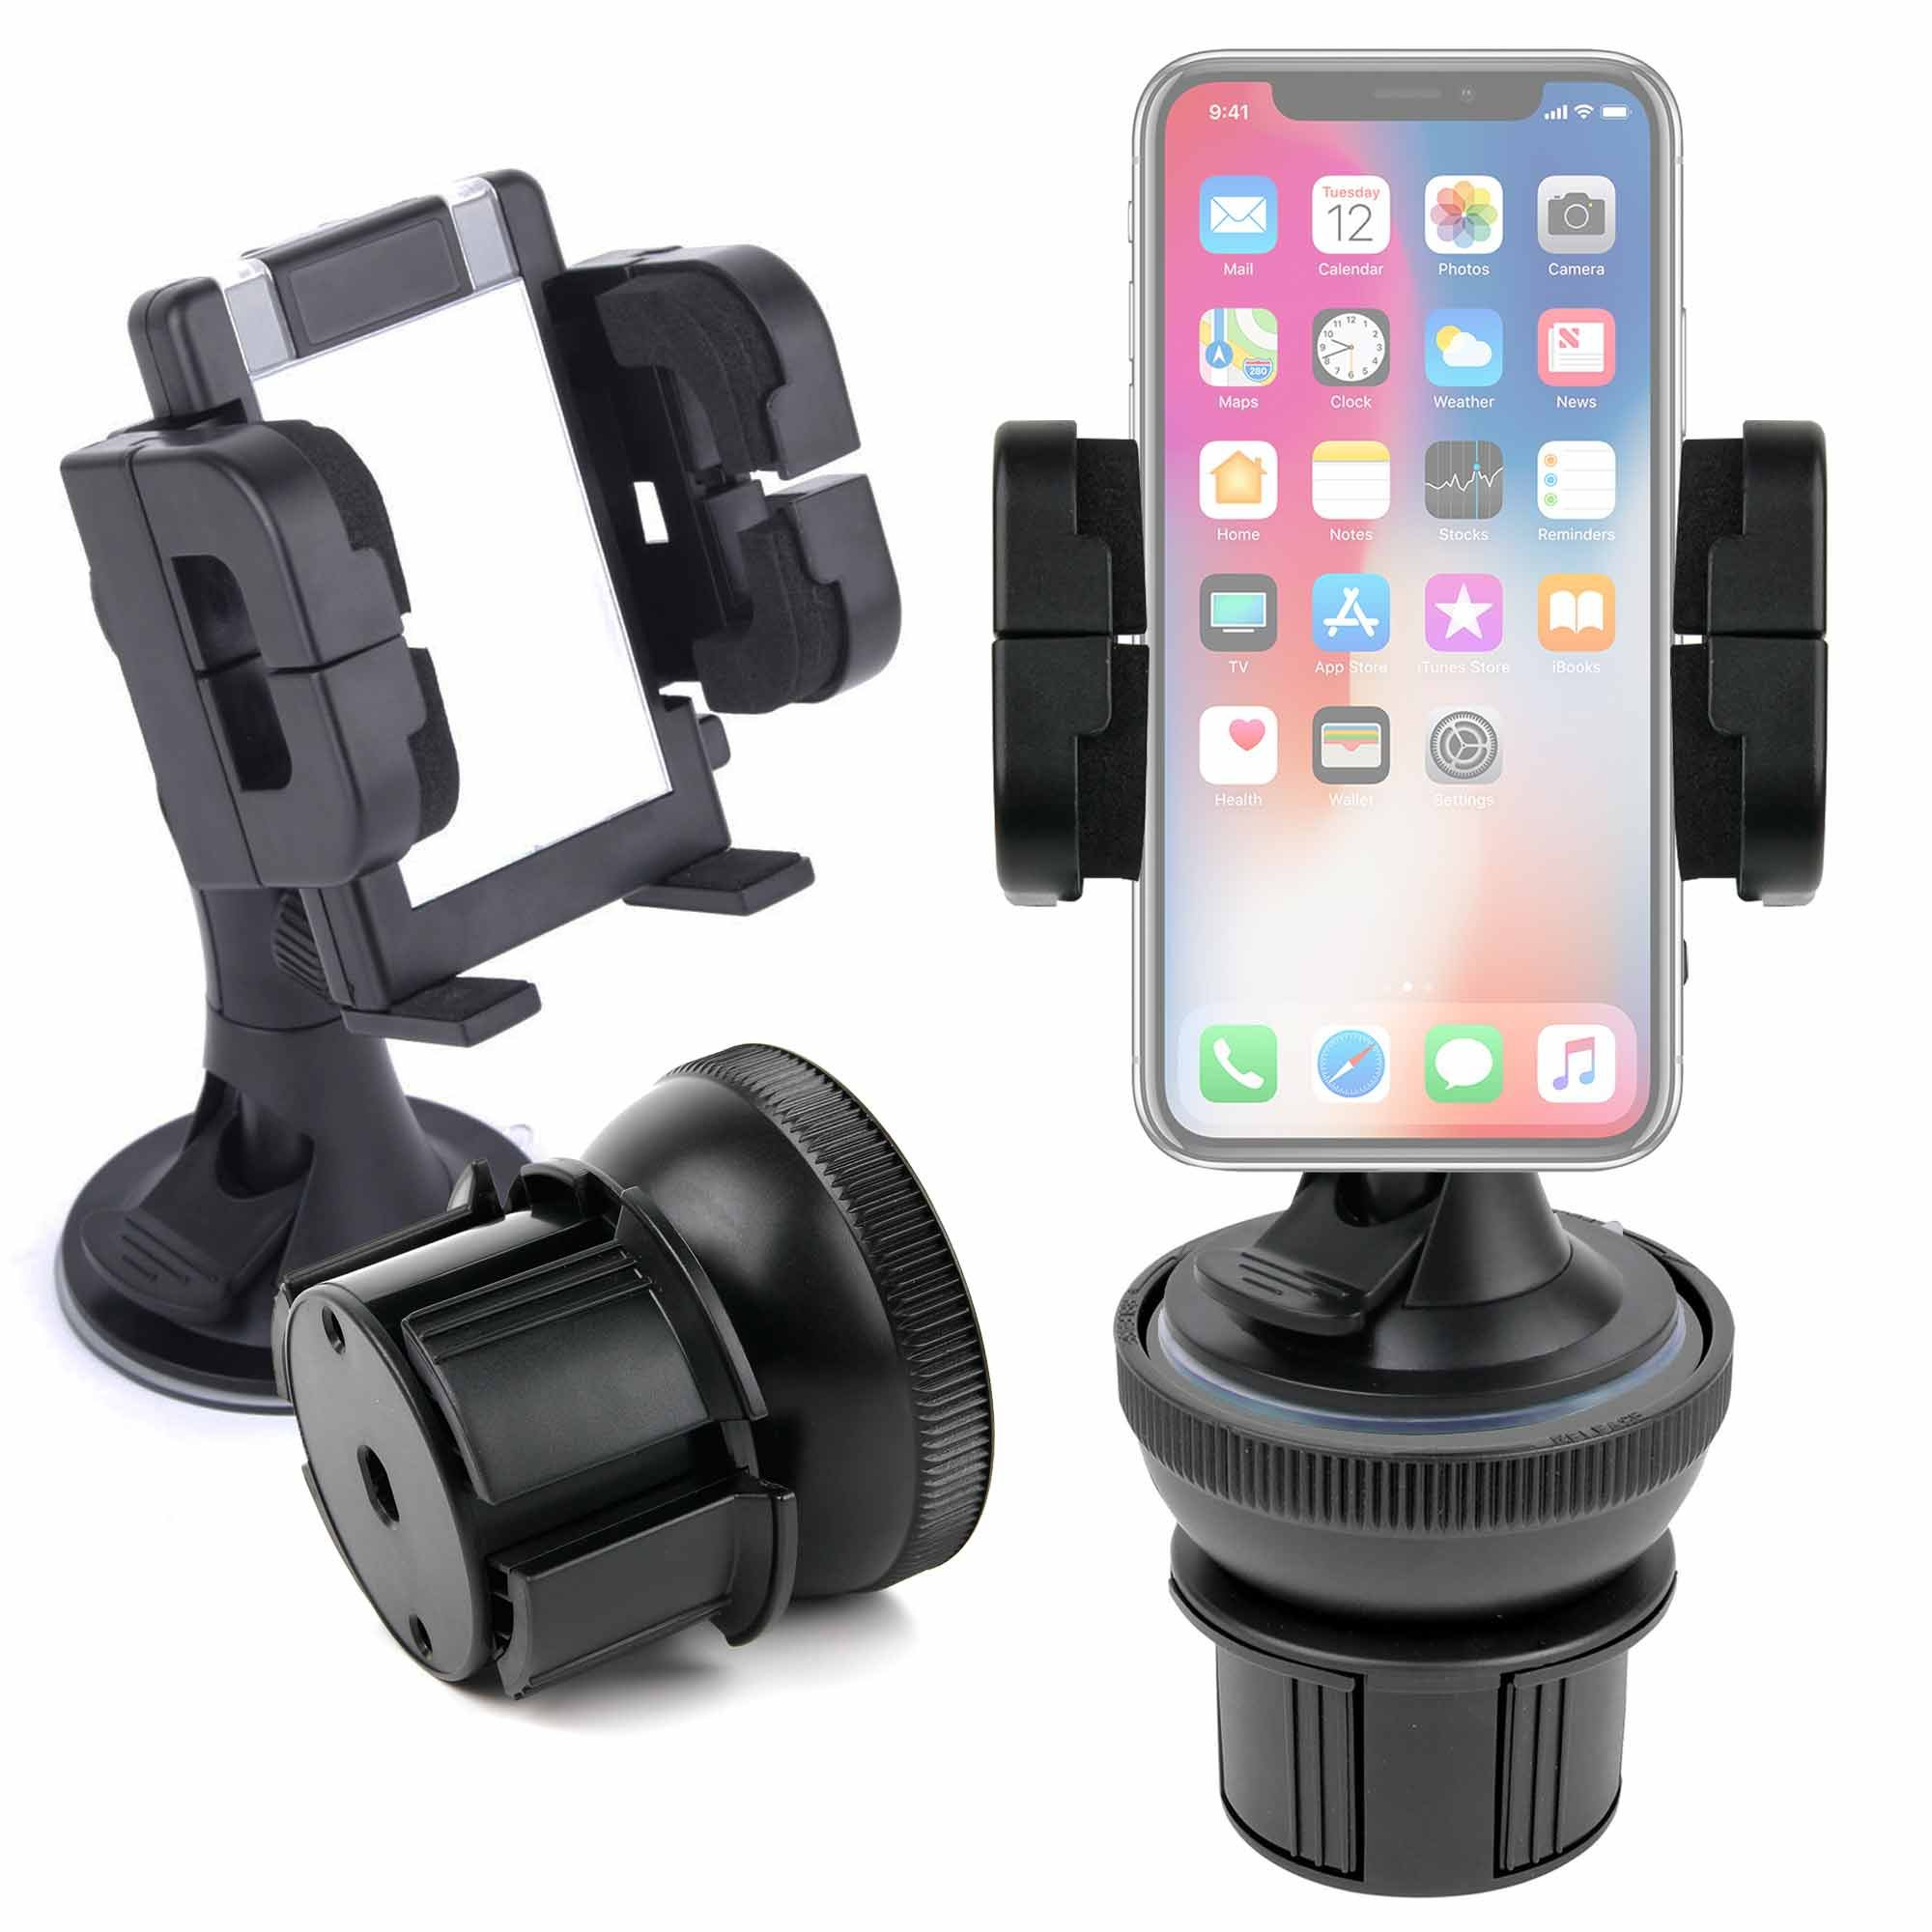 DURAGADGET Anti-Shock/Vibration & Adjustable In Car Cup Holder With 360 Degree Rotation for Apple iPhone X / 8/8 Plus / 7/7 Plus / 6S / 6S Plus / 6/6 Plus/SE / 5S / 5 - by DURAGADGET by DURAGADGET